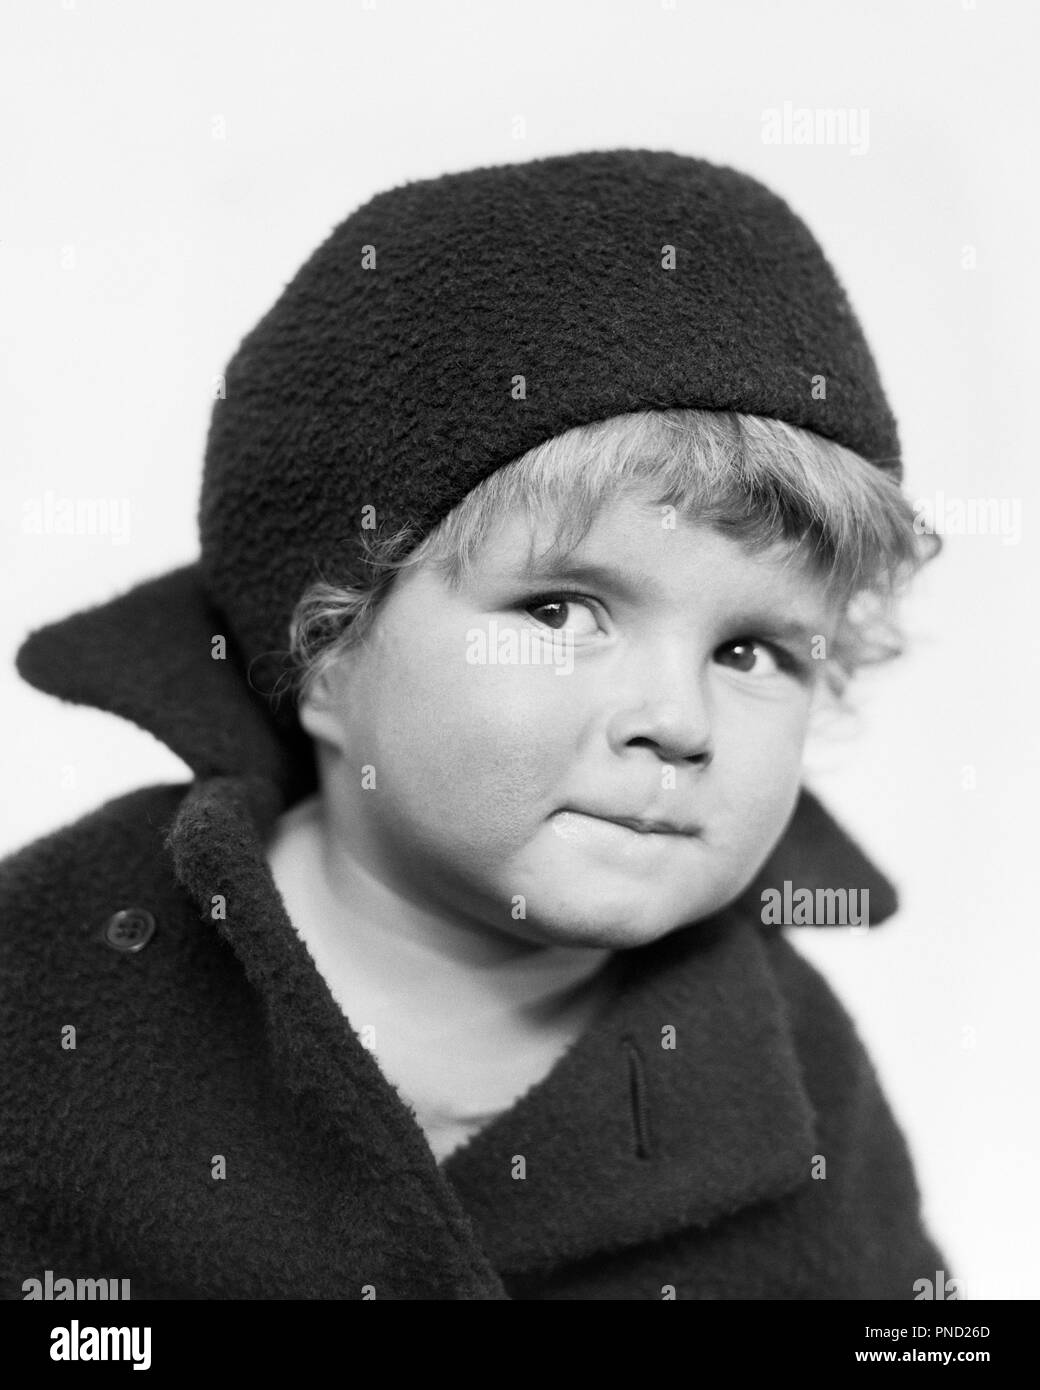 b860ef878268c 1930s CUTE INQUISITIVE BLOND LITTLE GIRL WEARING FRENCH BERET AND WOOL COAT  LOOKING AT CAMERA -